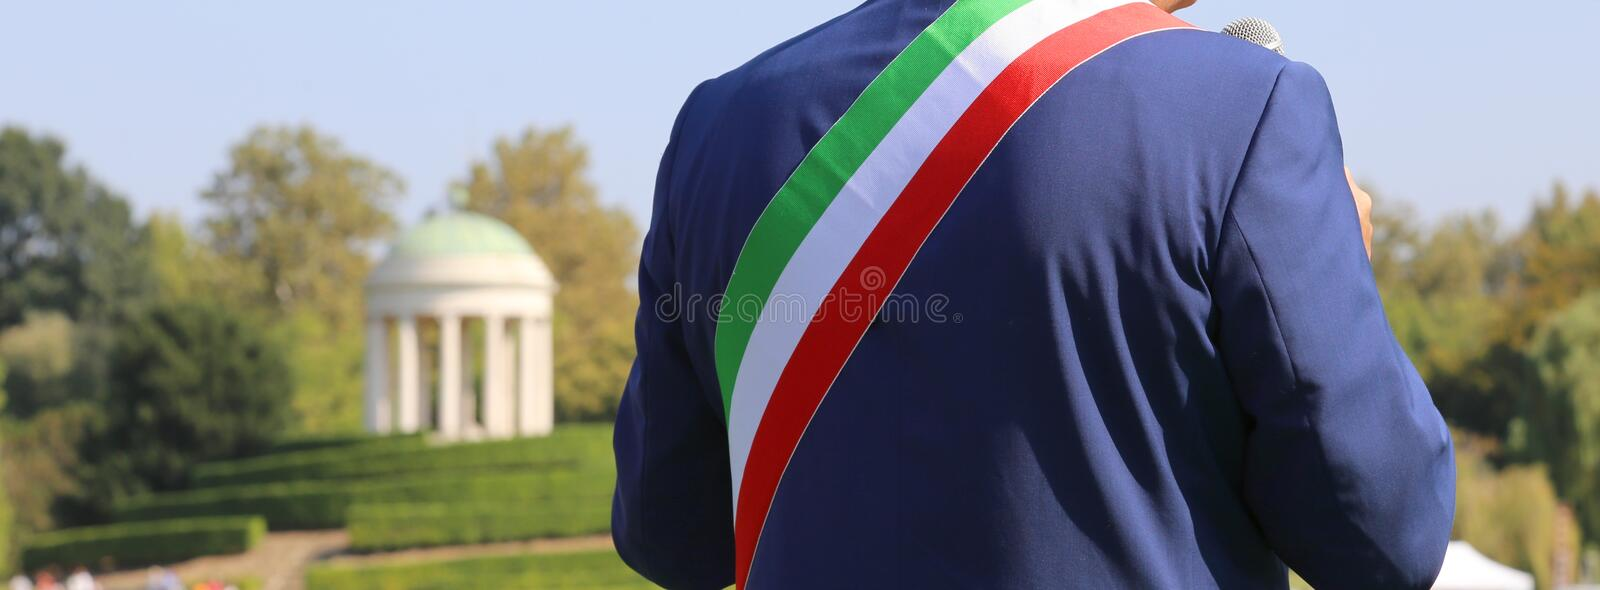 Italian mayor with the tricolor flag at a public event outdoors. Italian mayor with the tricolor flag and the small temple in the background at a public event stock photography